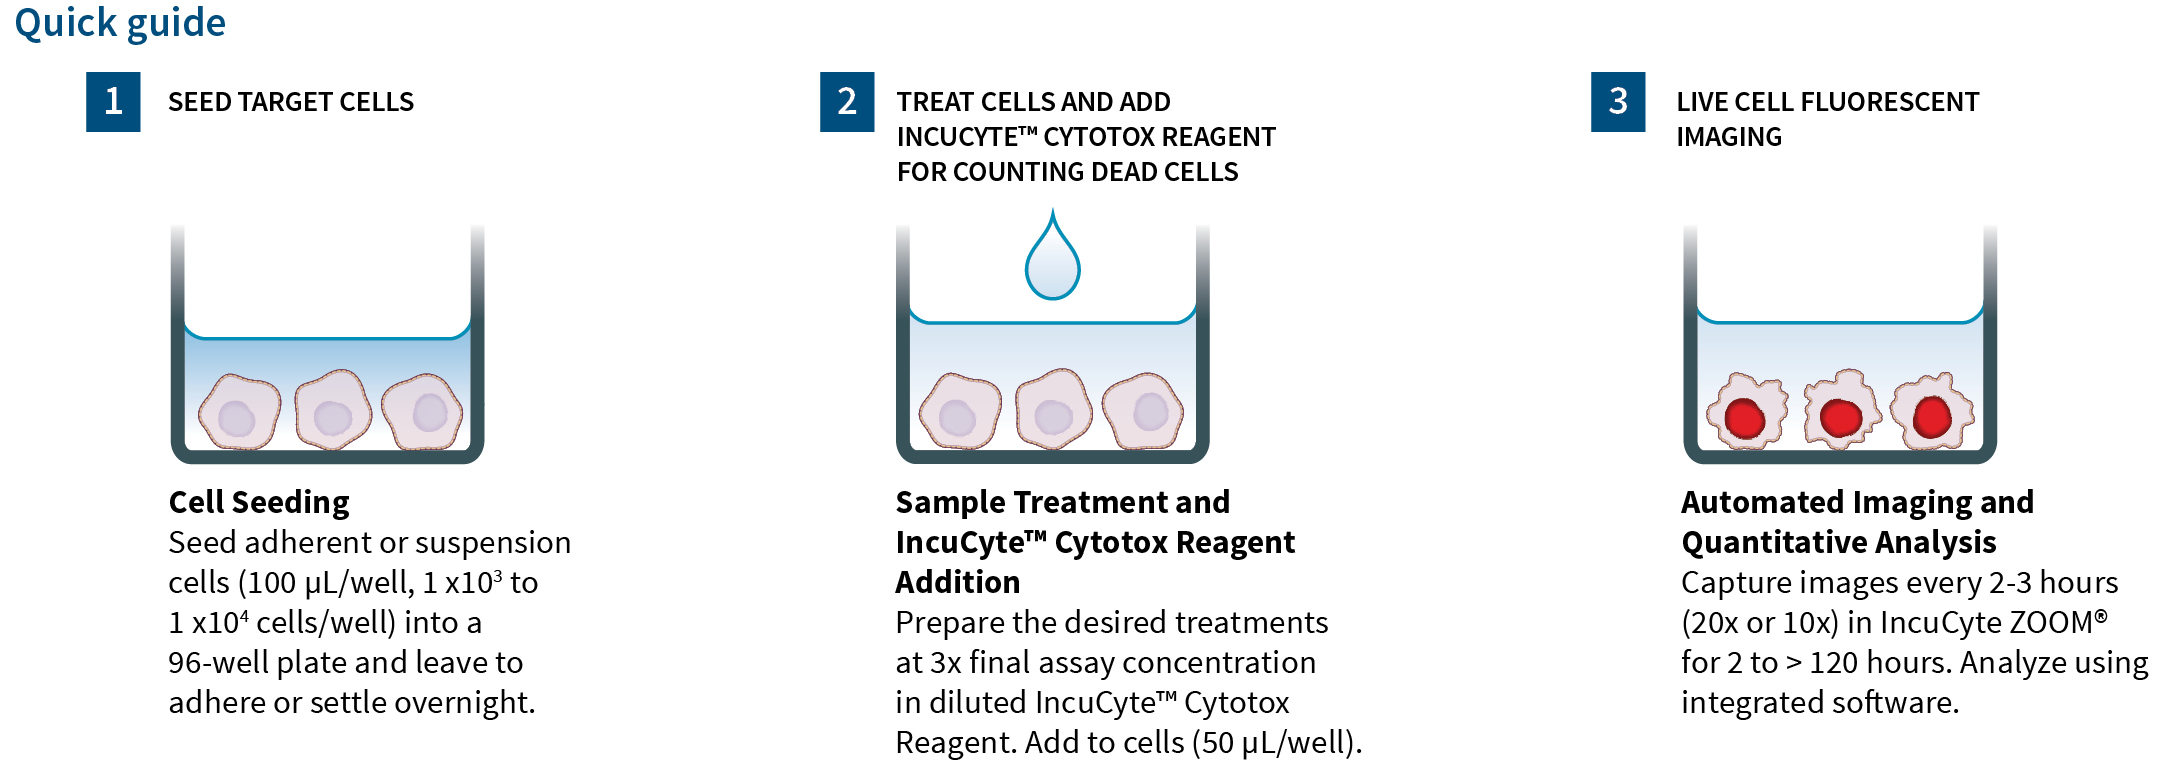 IncuCyte® Cytotox Red Reagent for counting dead cells